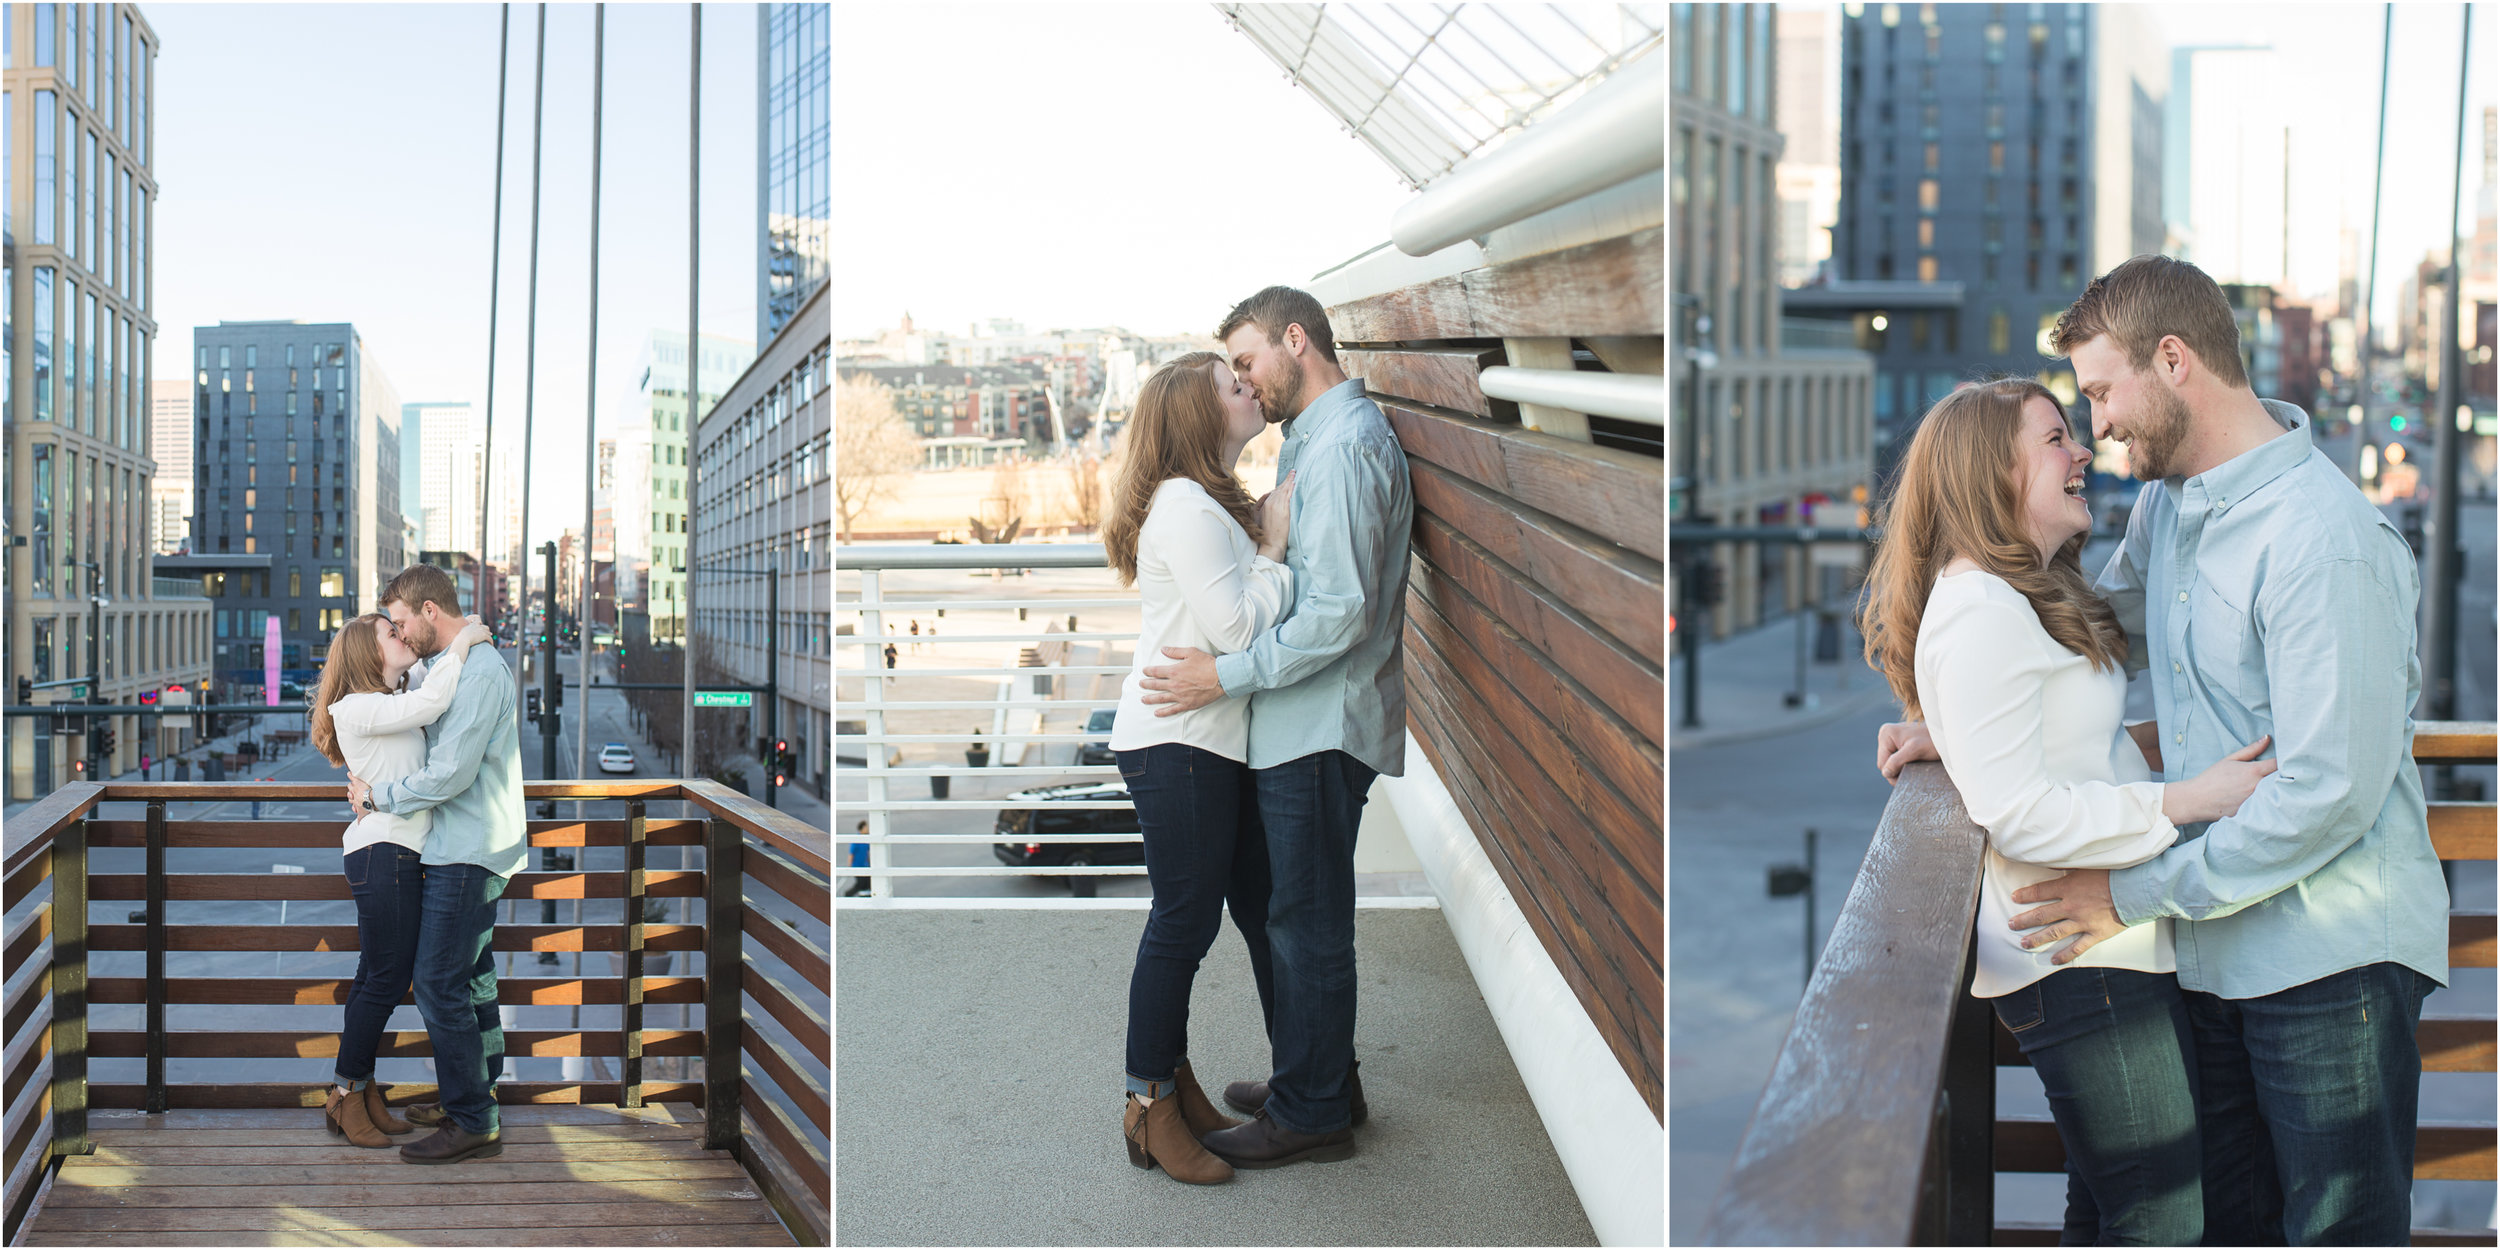 Molly & Tyler Downtown Denver Engagement Session 3.jpg